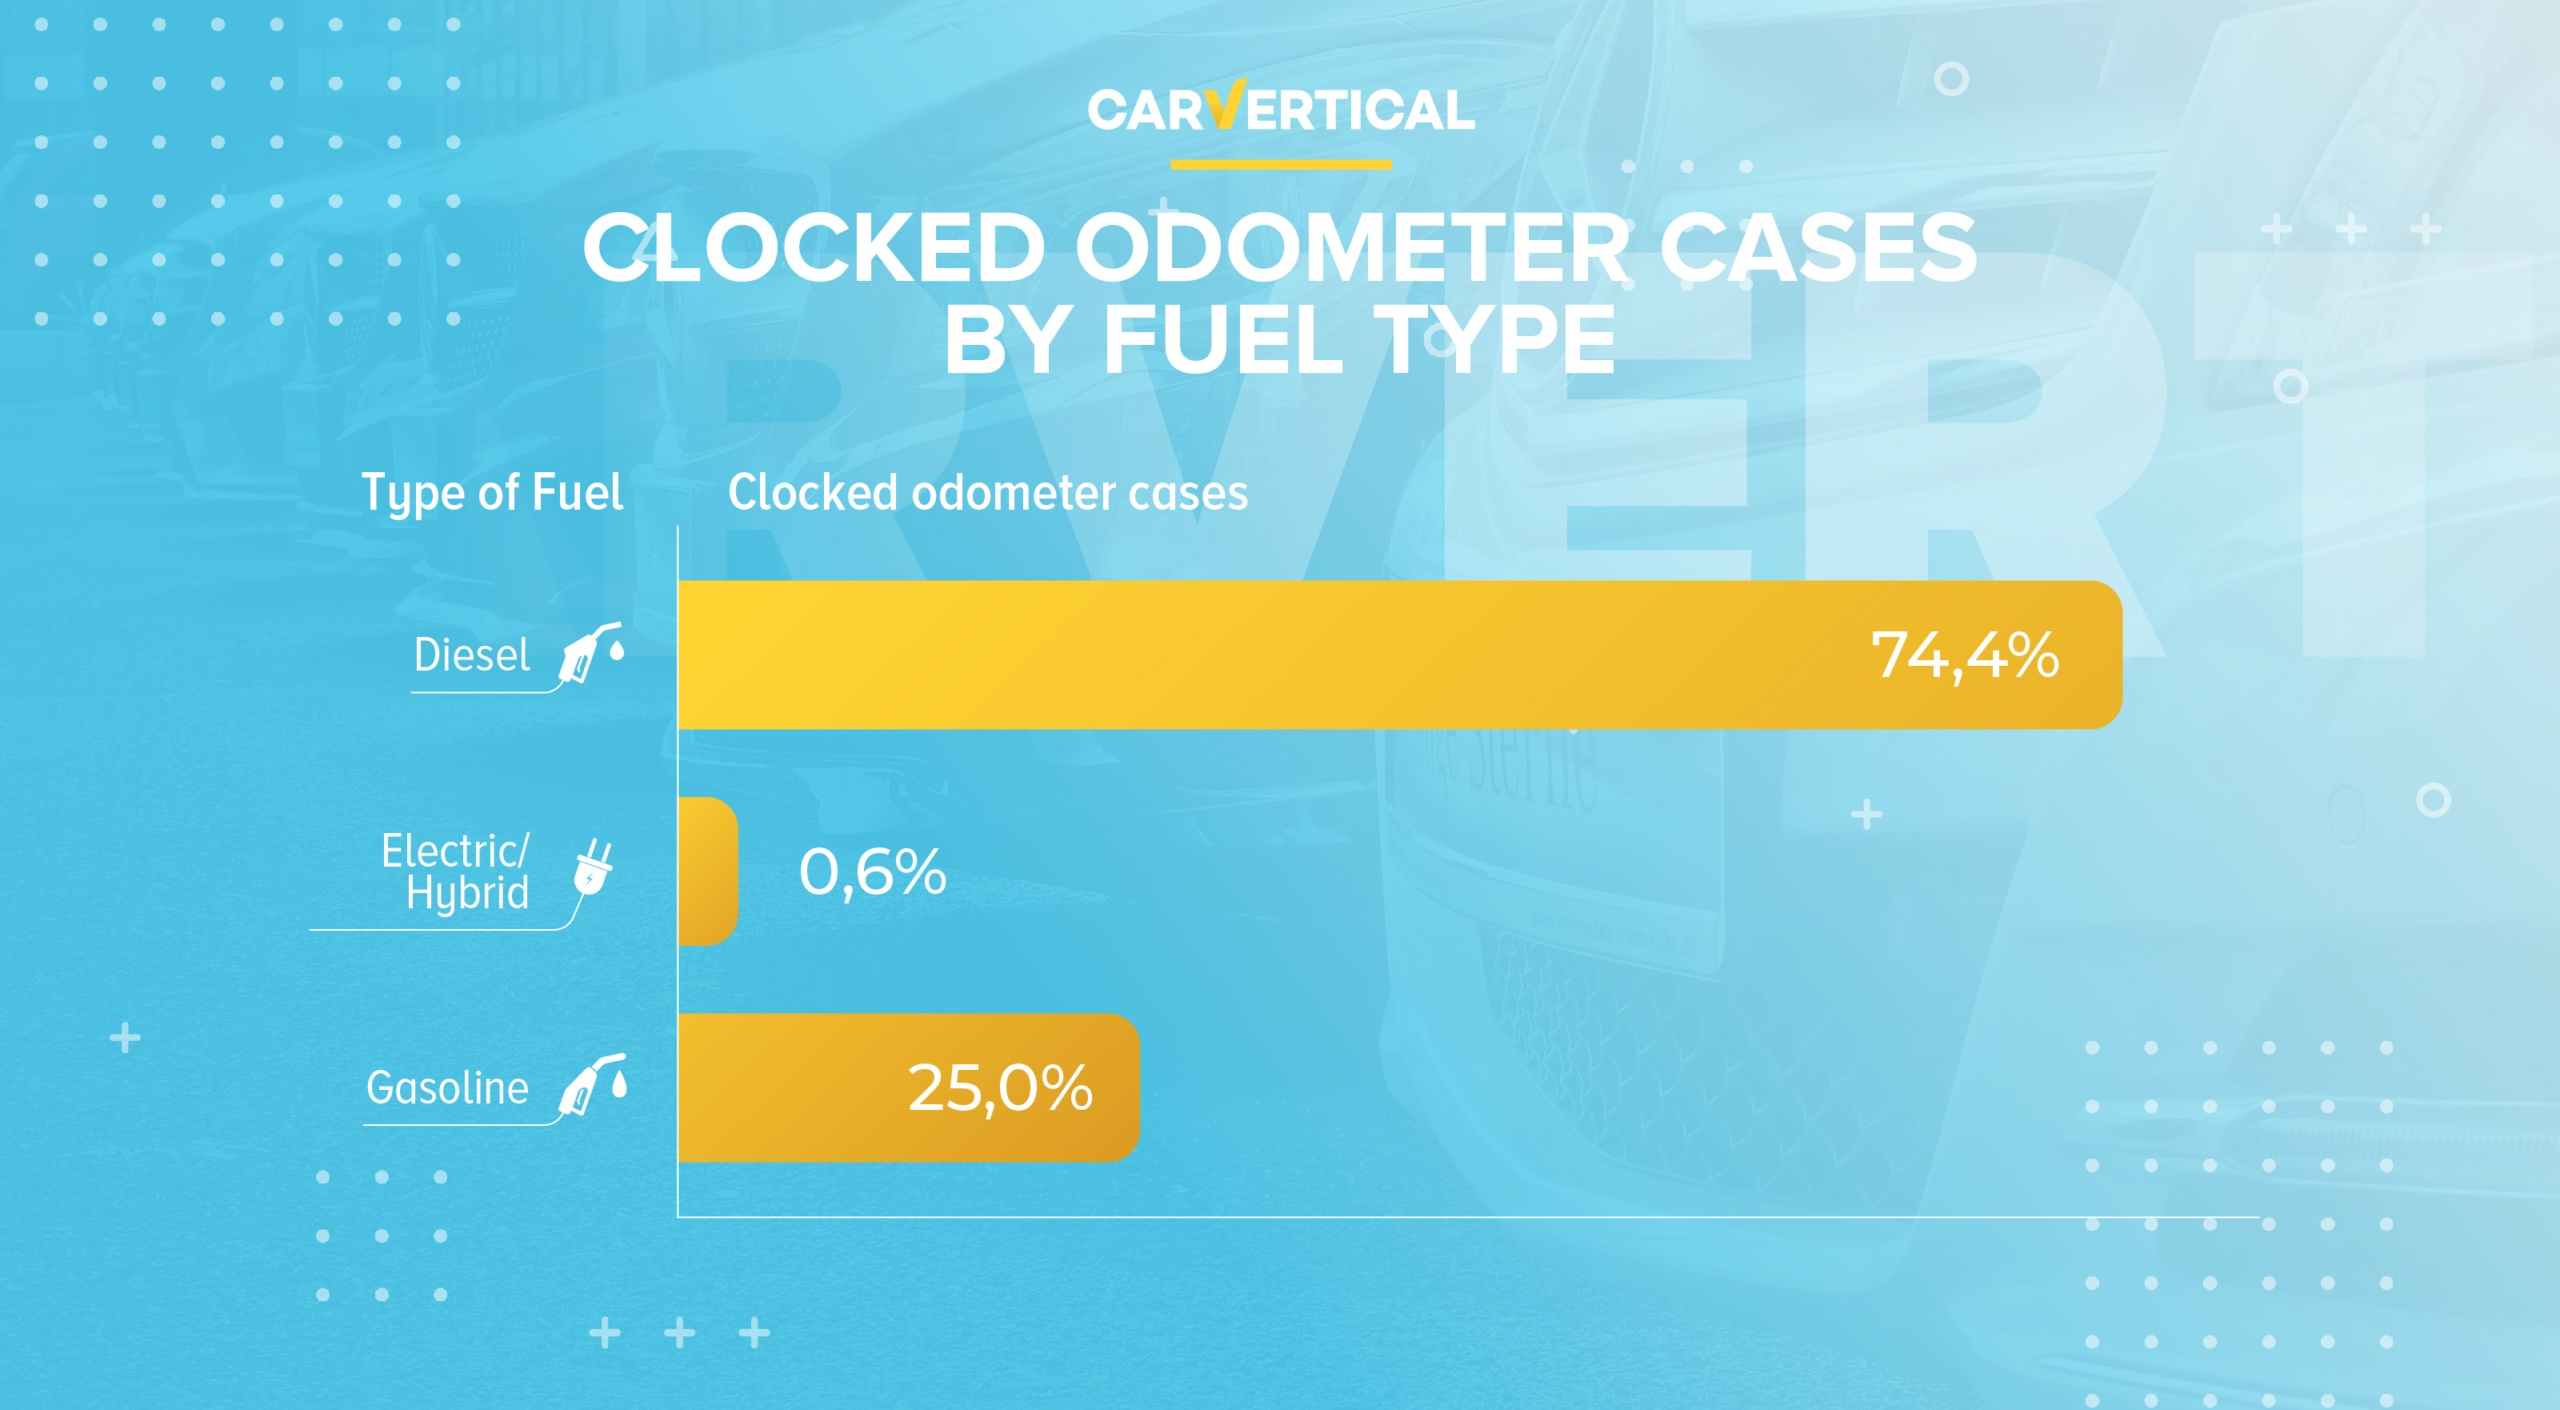 Clocked odometer cases by fuel type